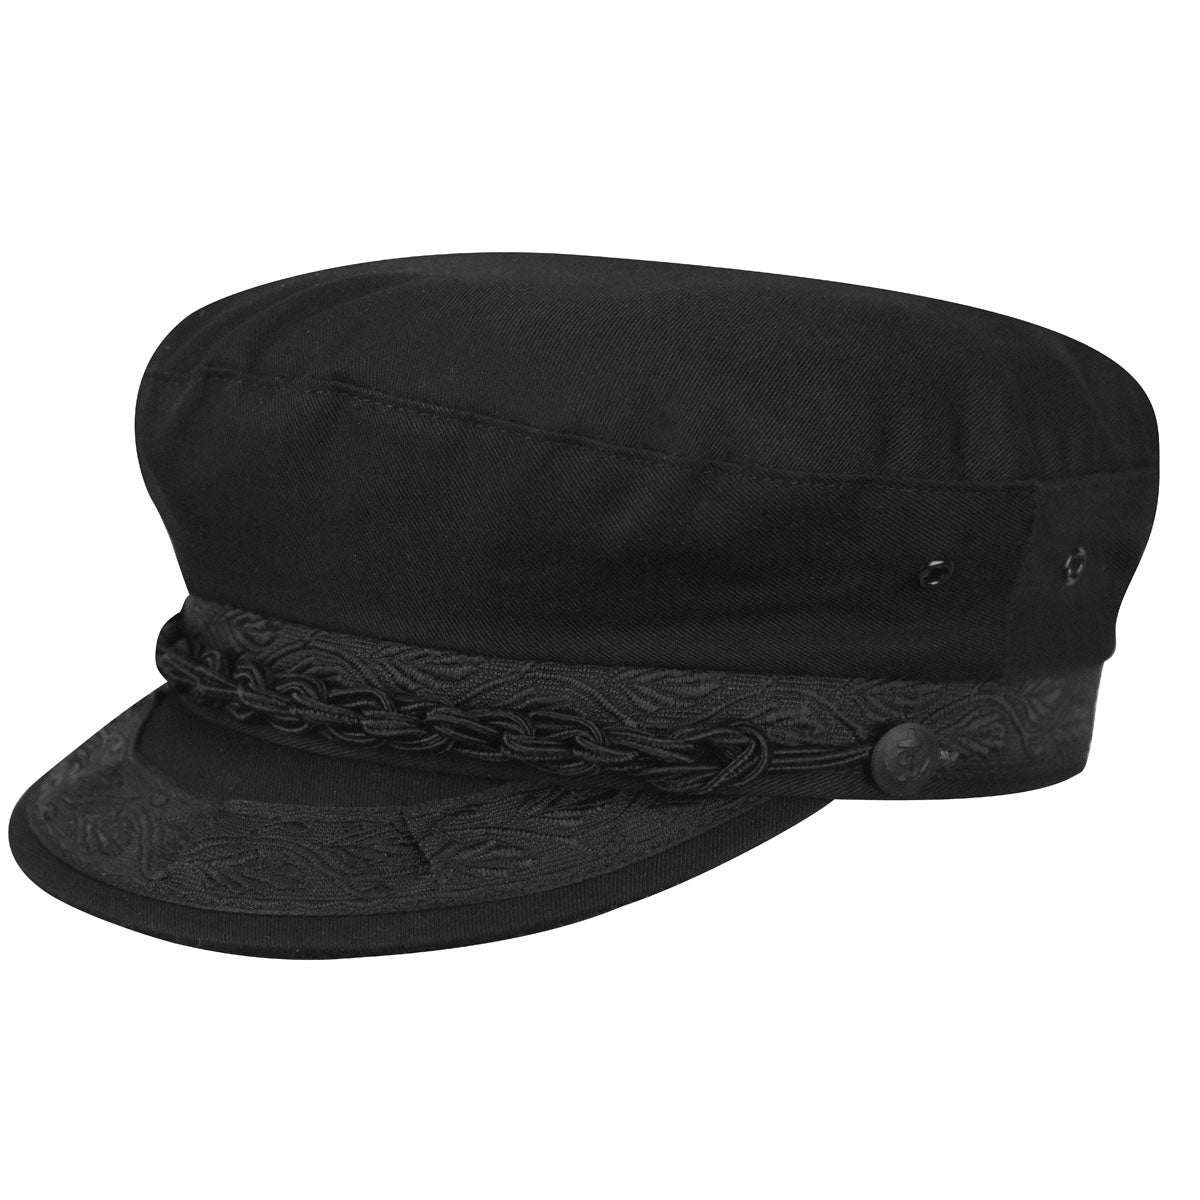 1960s – 70s Style Men's Hats Authentic Greek Cotton Cap $33.00 AT vintagedancer.com